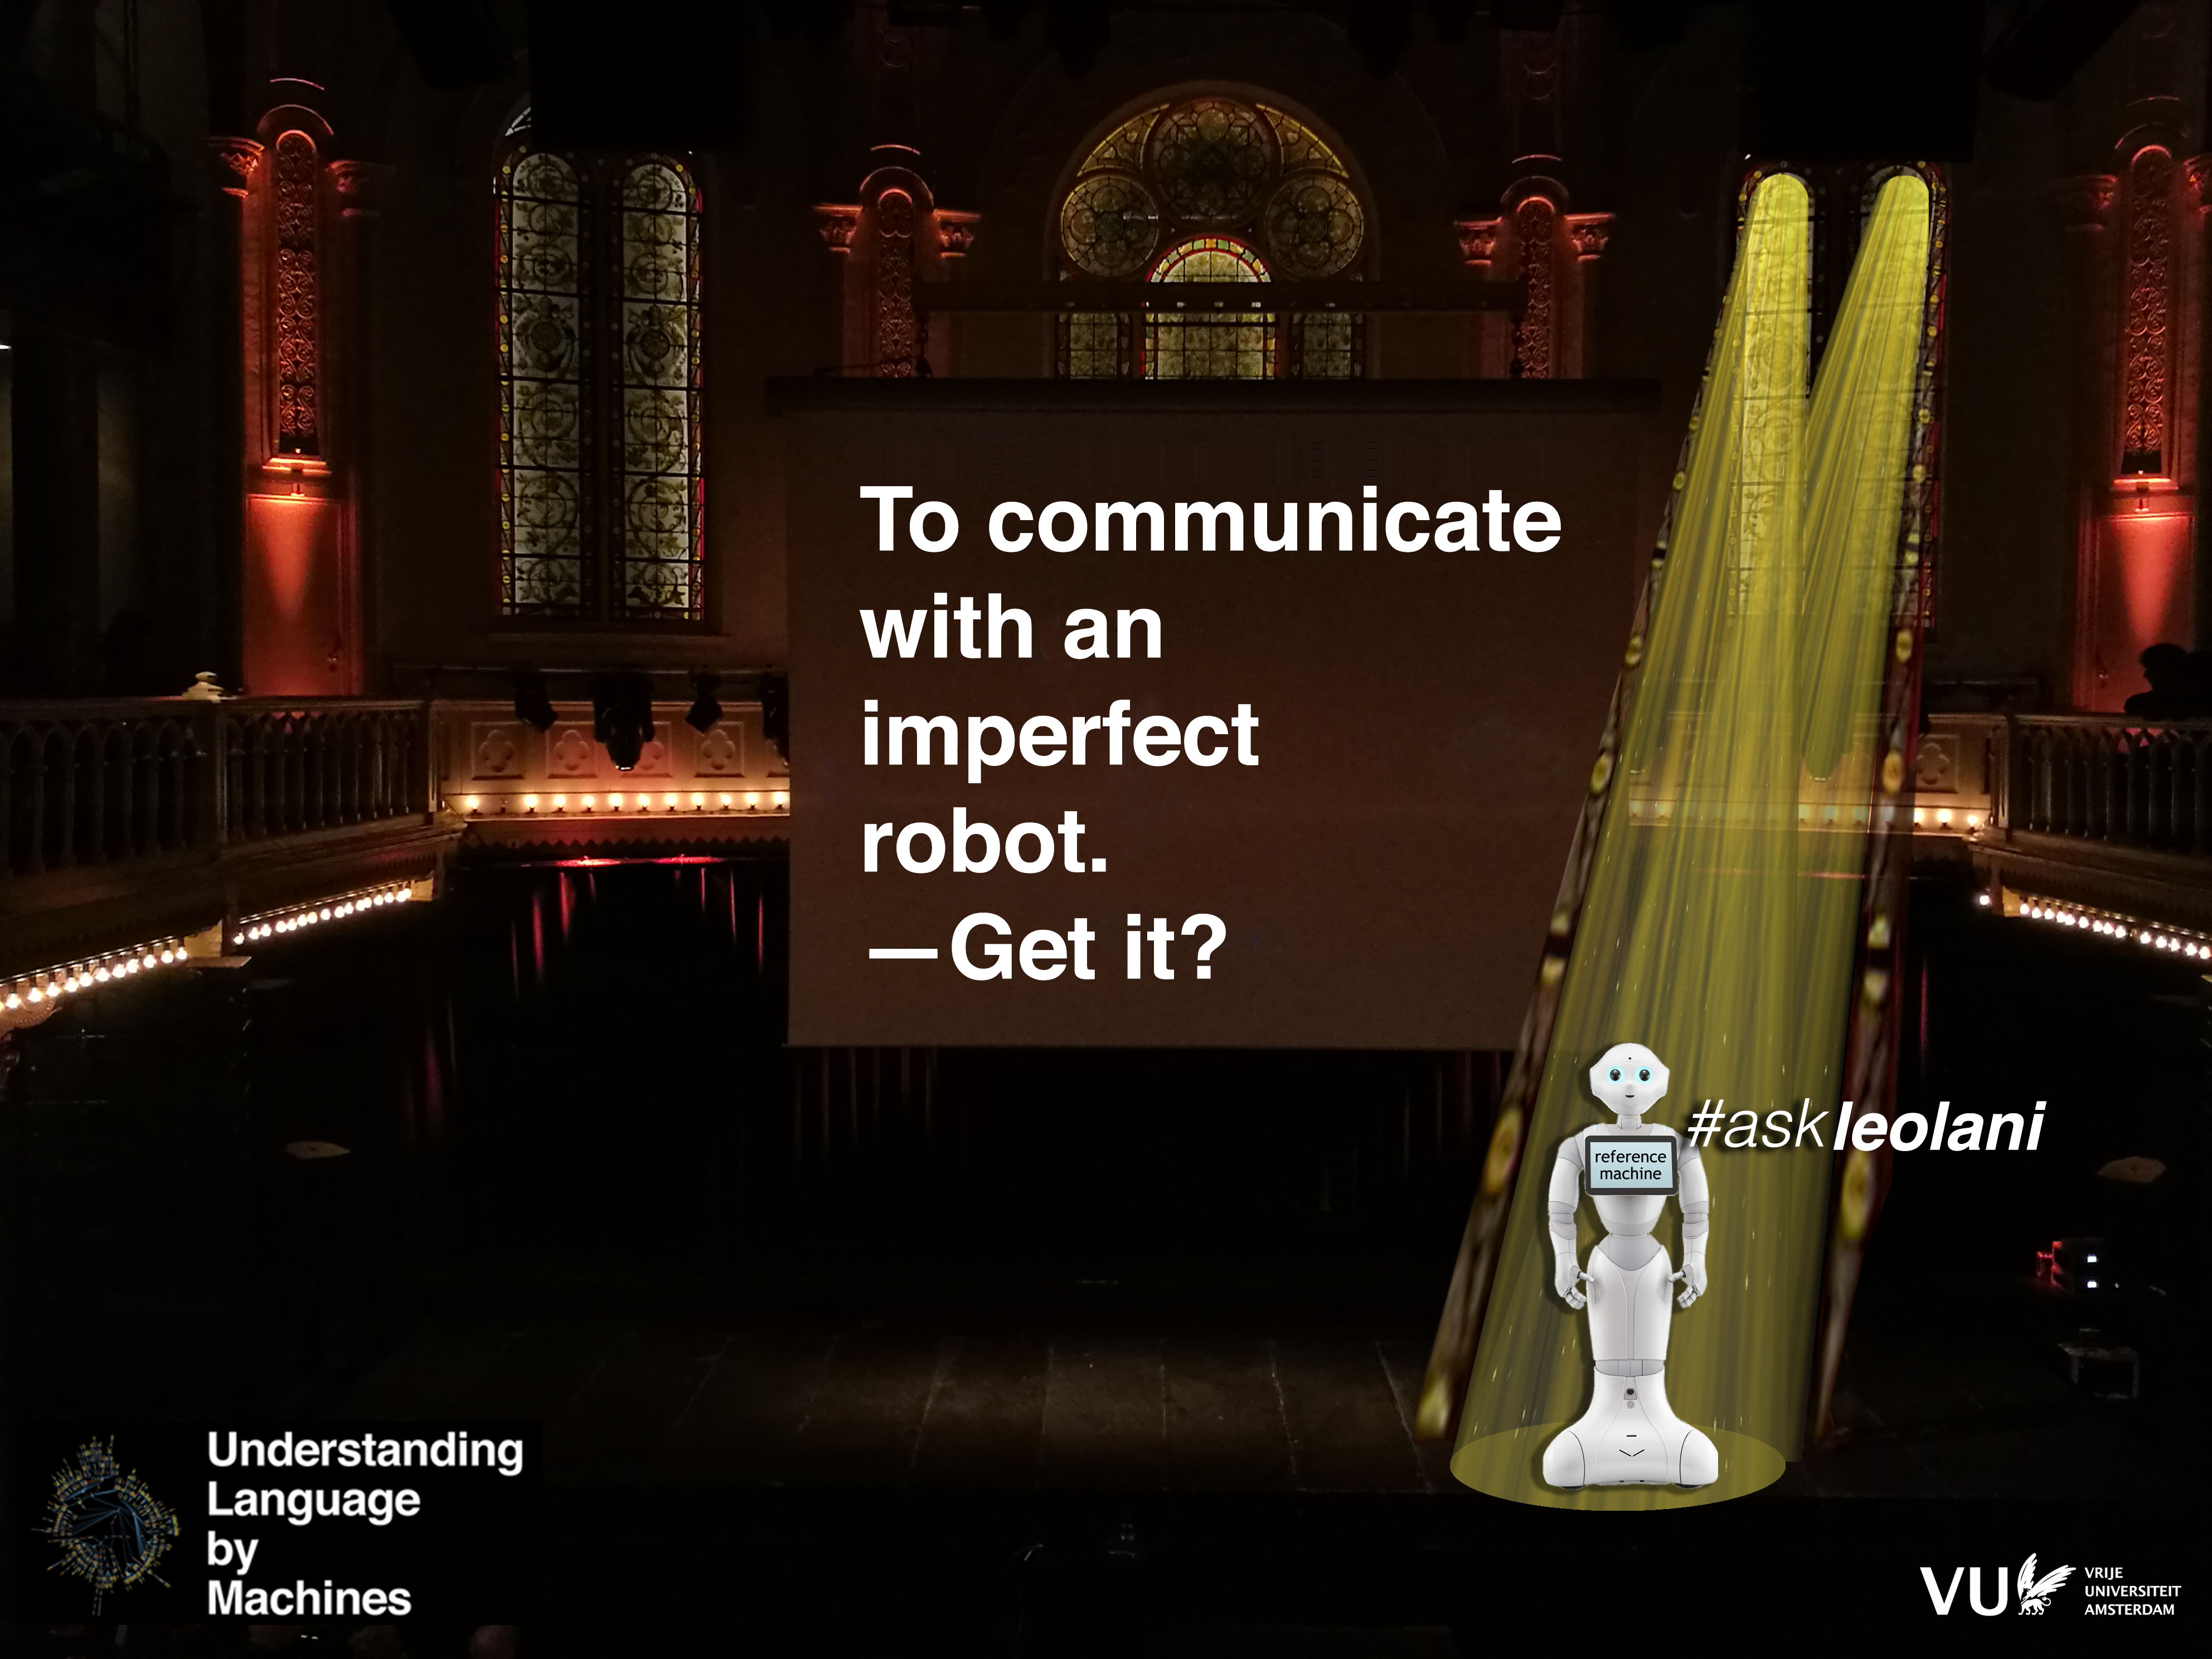 TO COMMUNICATE WITH AN IMPERFECT ROBOT. GET IT?